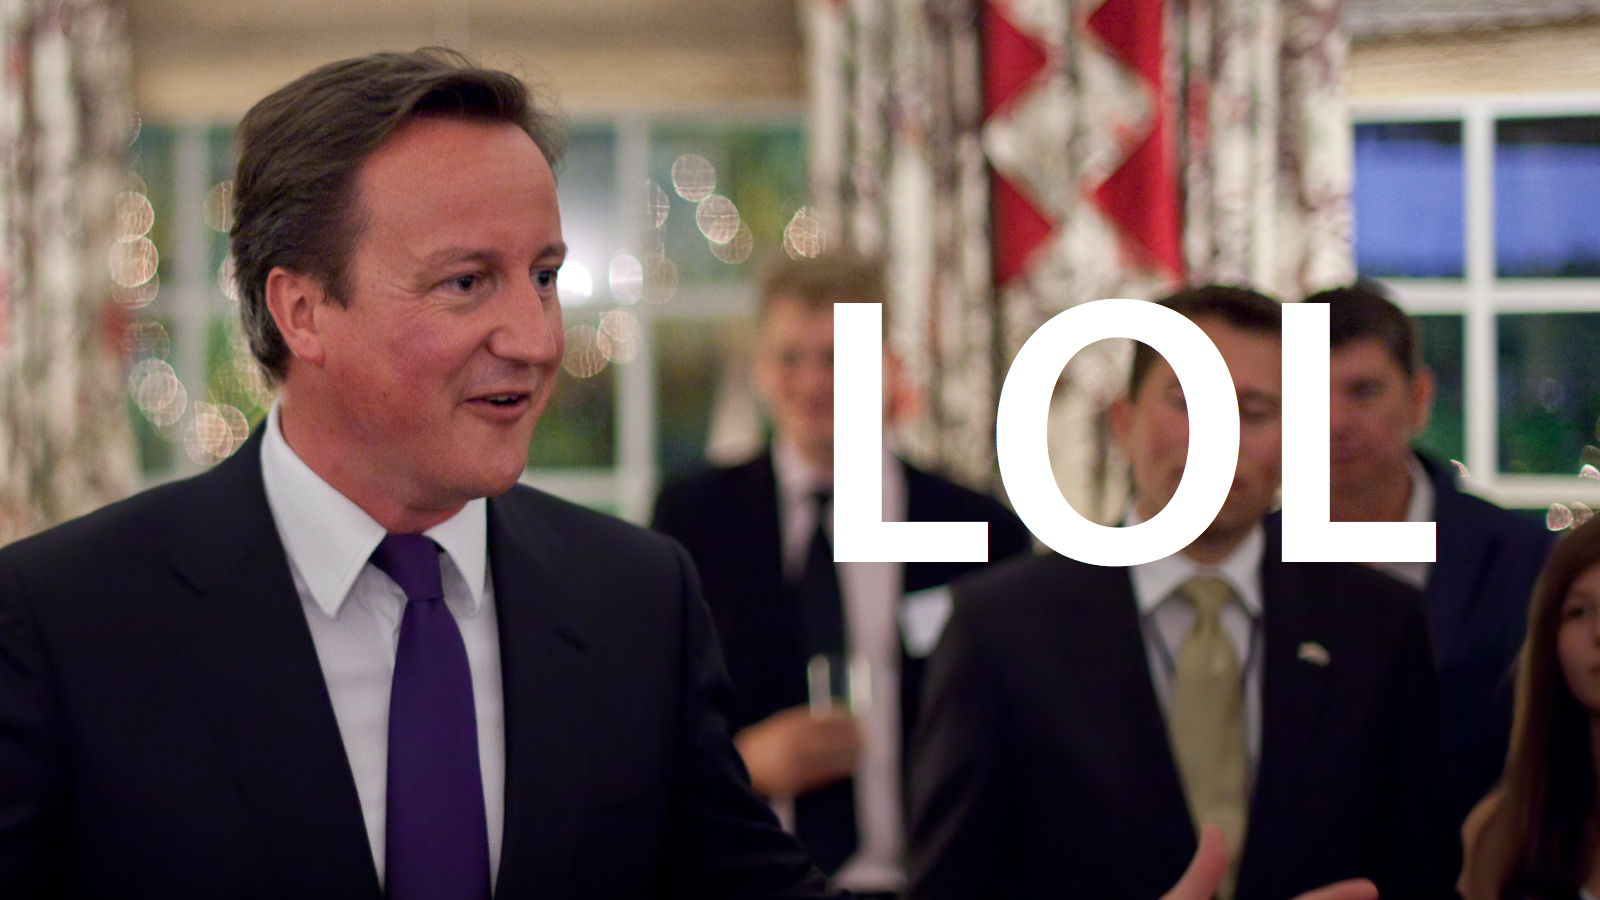 Click here to read UK Prime Minister Thought 'LOL' Meant 'Lots of Love'